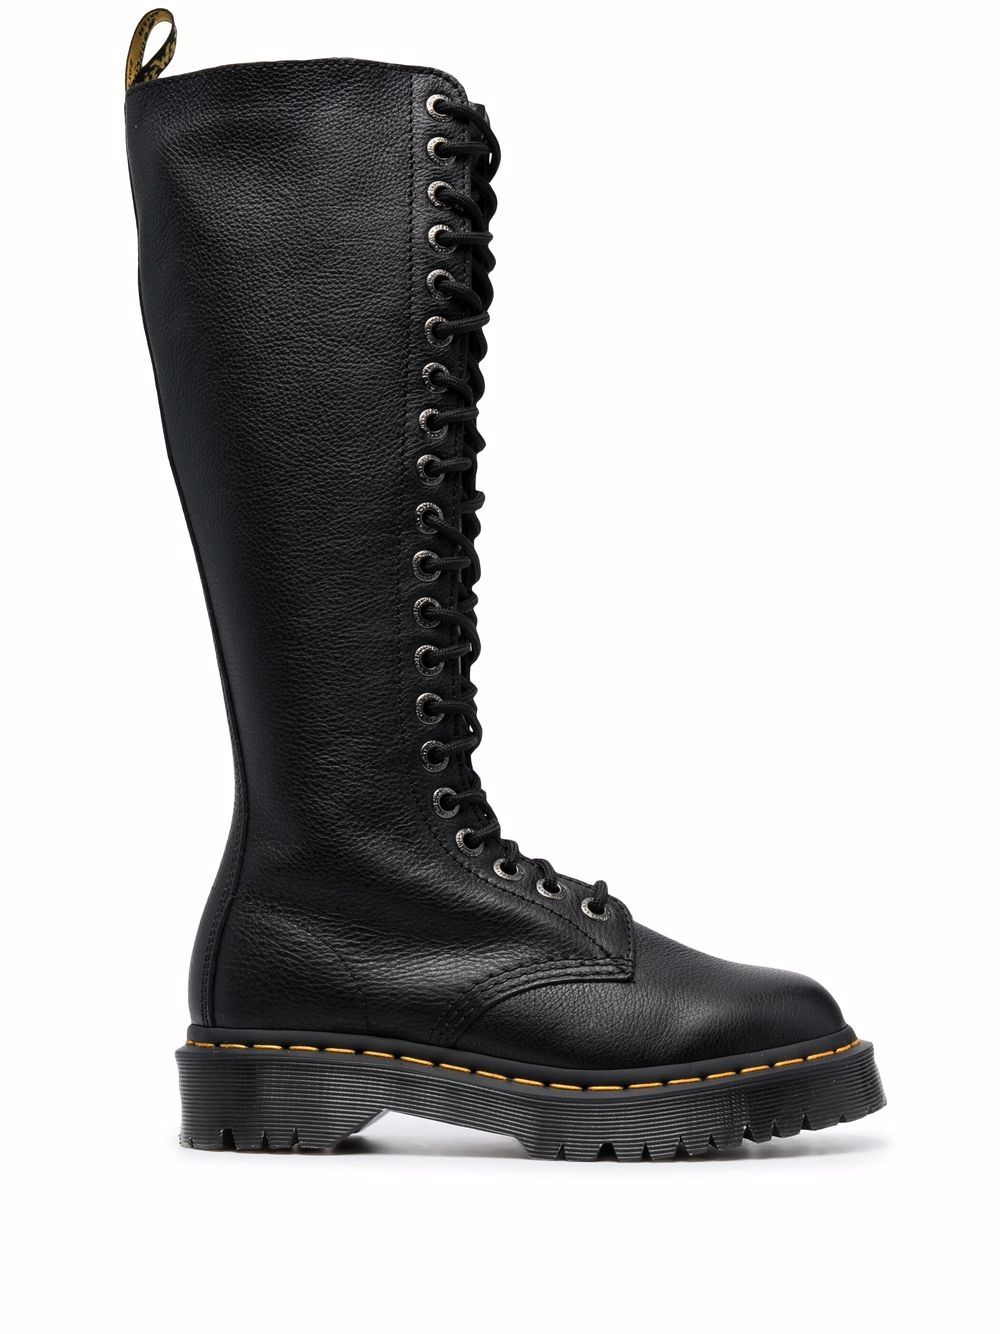 DR. MARTENS- Leather Ankle Boots- Woman- 6½ - Black